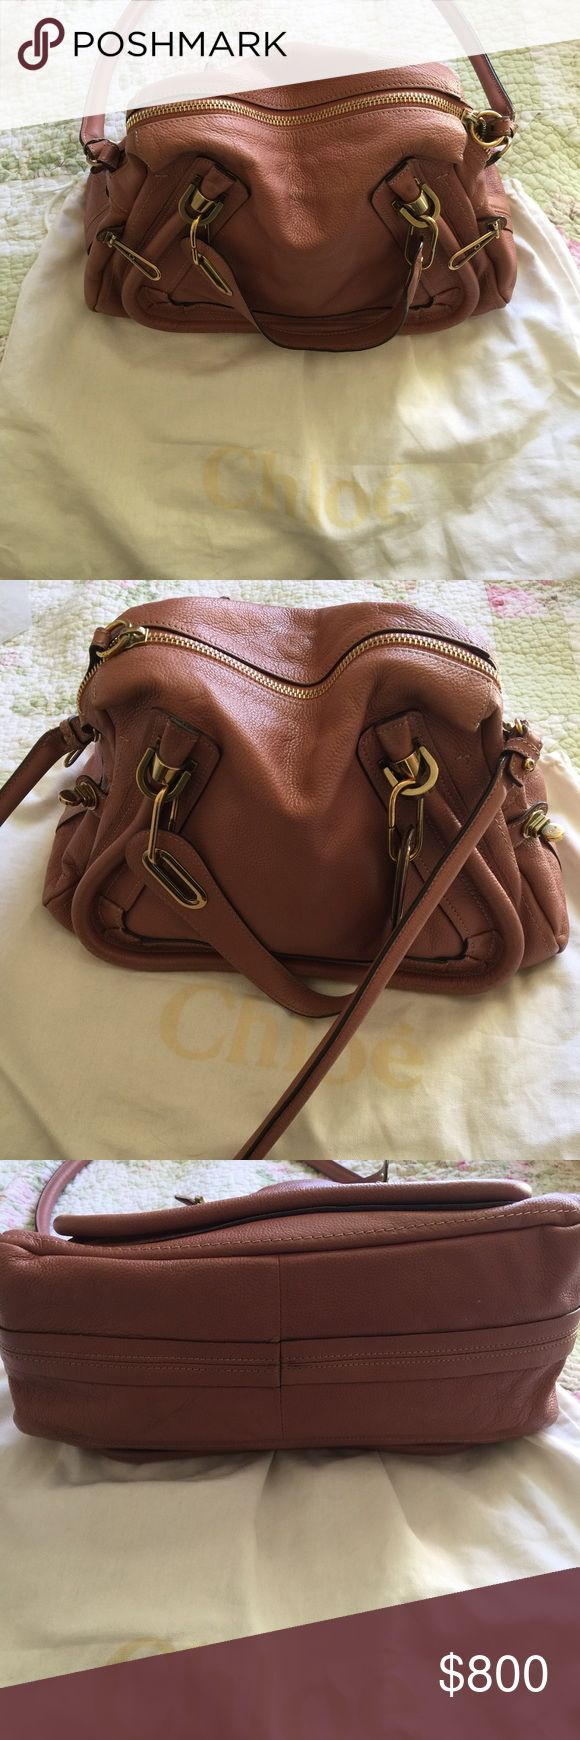 Chloe Paraty small in rare pink Chloe Paraty small shoulder bag in unique rusty pink. Loved this purse so much so wear and tear is pictured. Picture of receipt and authenticity card is available. Please note shoulder strap does not remove. This pink color is a rare find! Chloe Bags Shoulder Bags